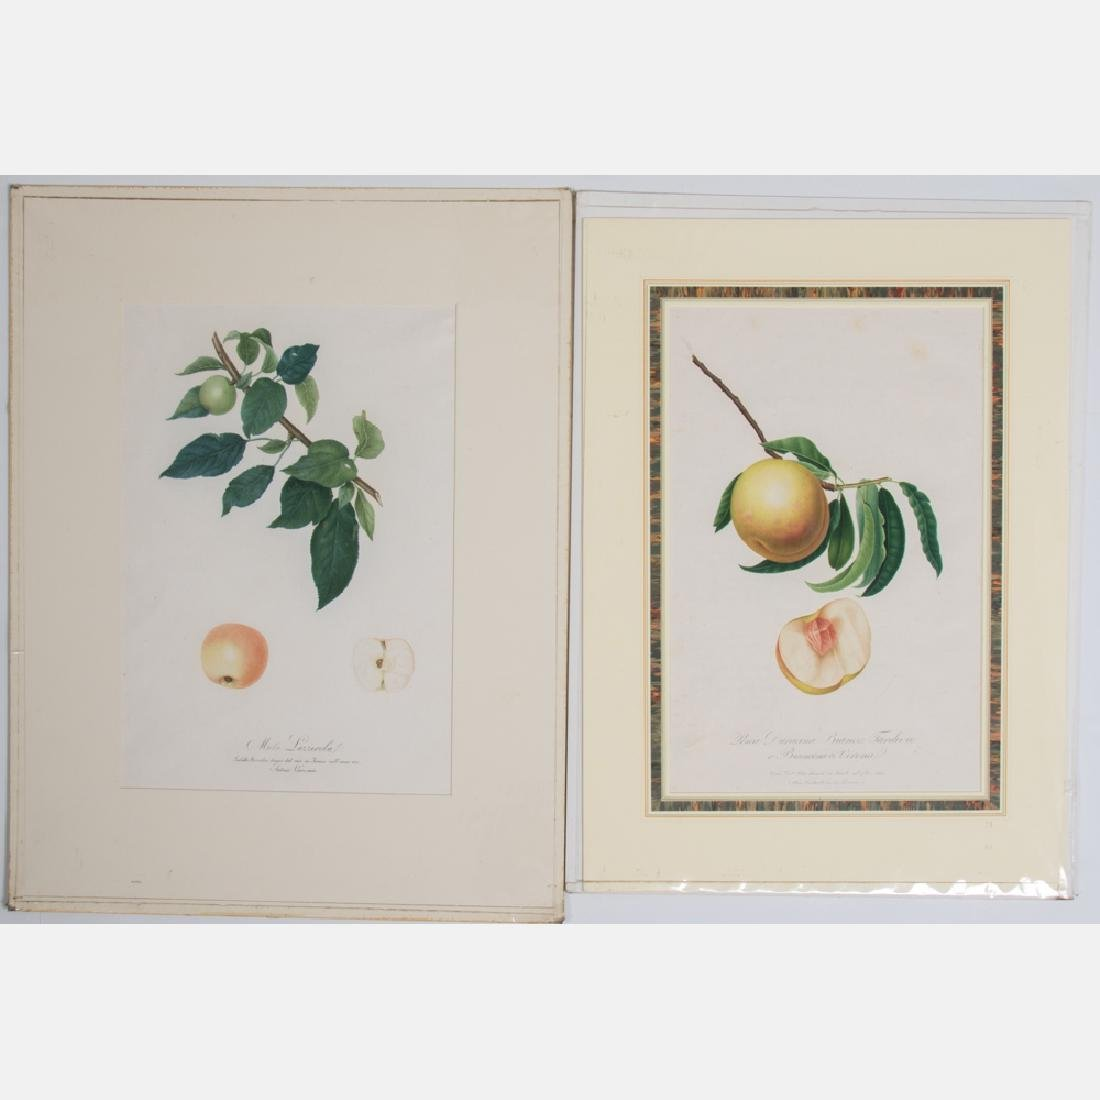 Two Italian Colored Engravings Depicting Fruit, 19th